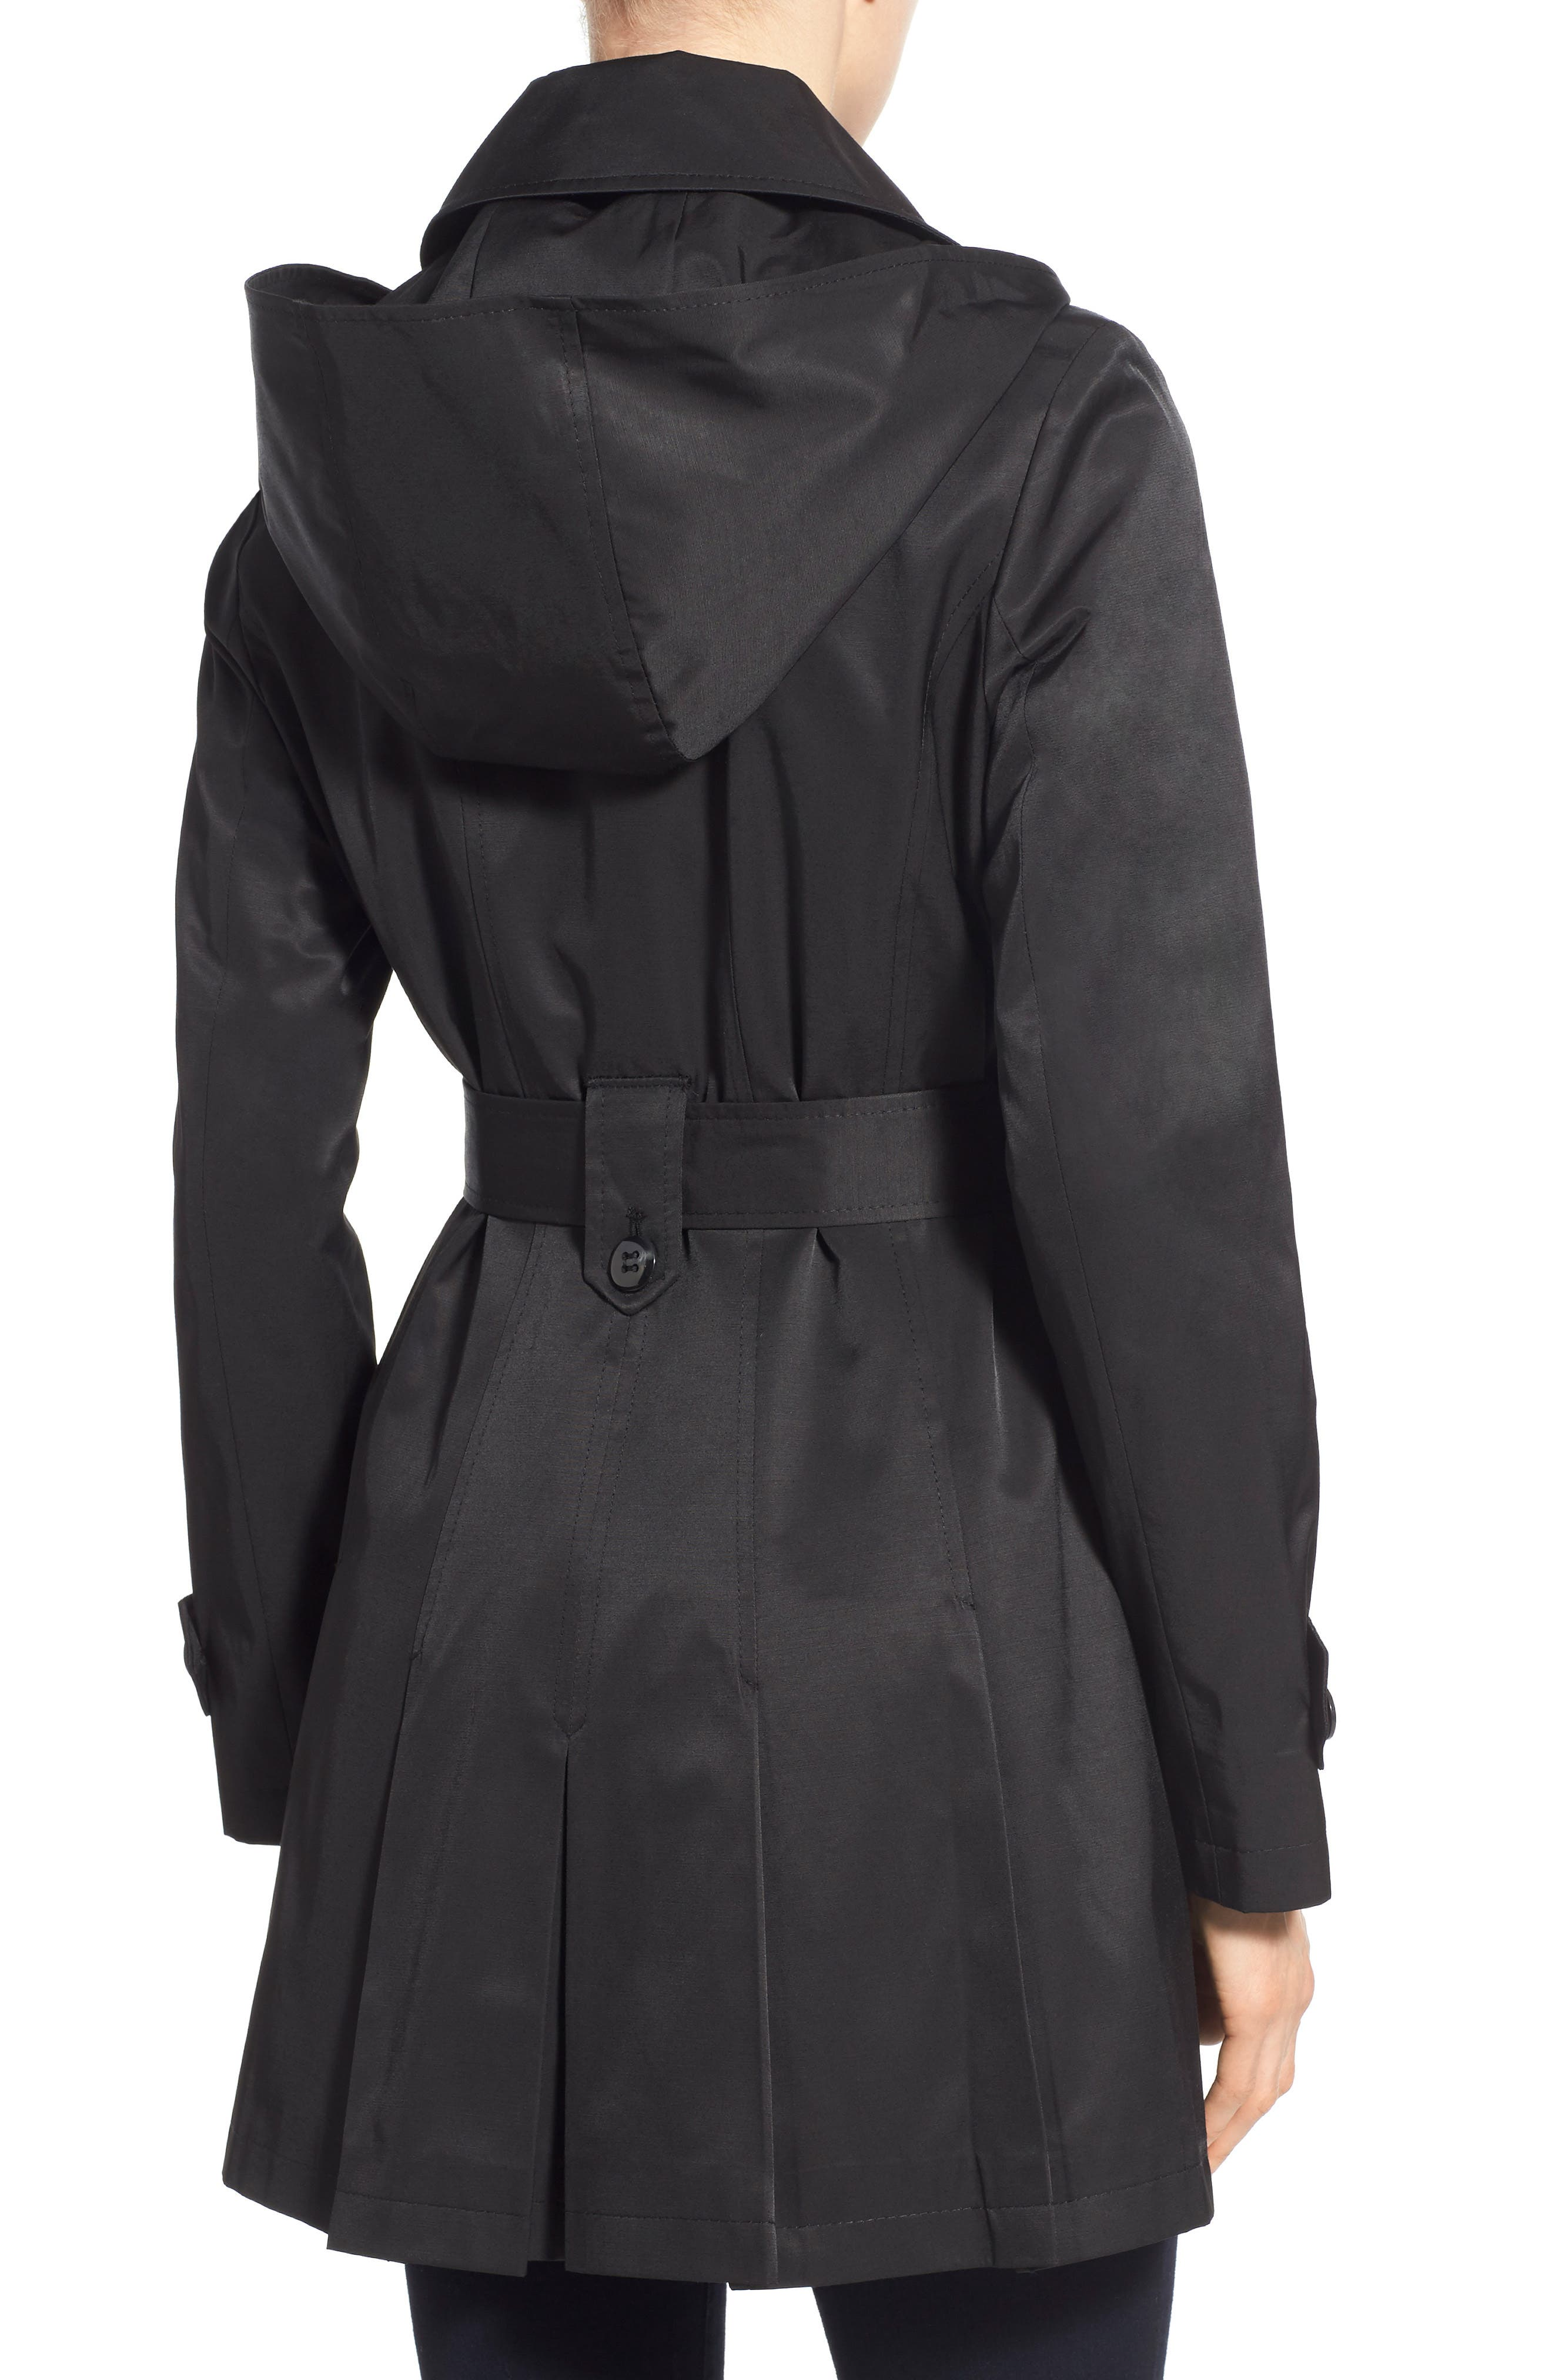 'Scarpa' Hooded Single Breasted Trench Coat,                             Alternate thumbnail 19, color,